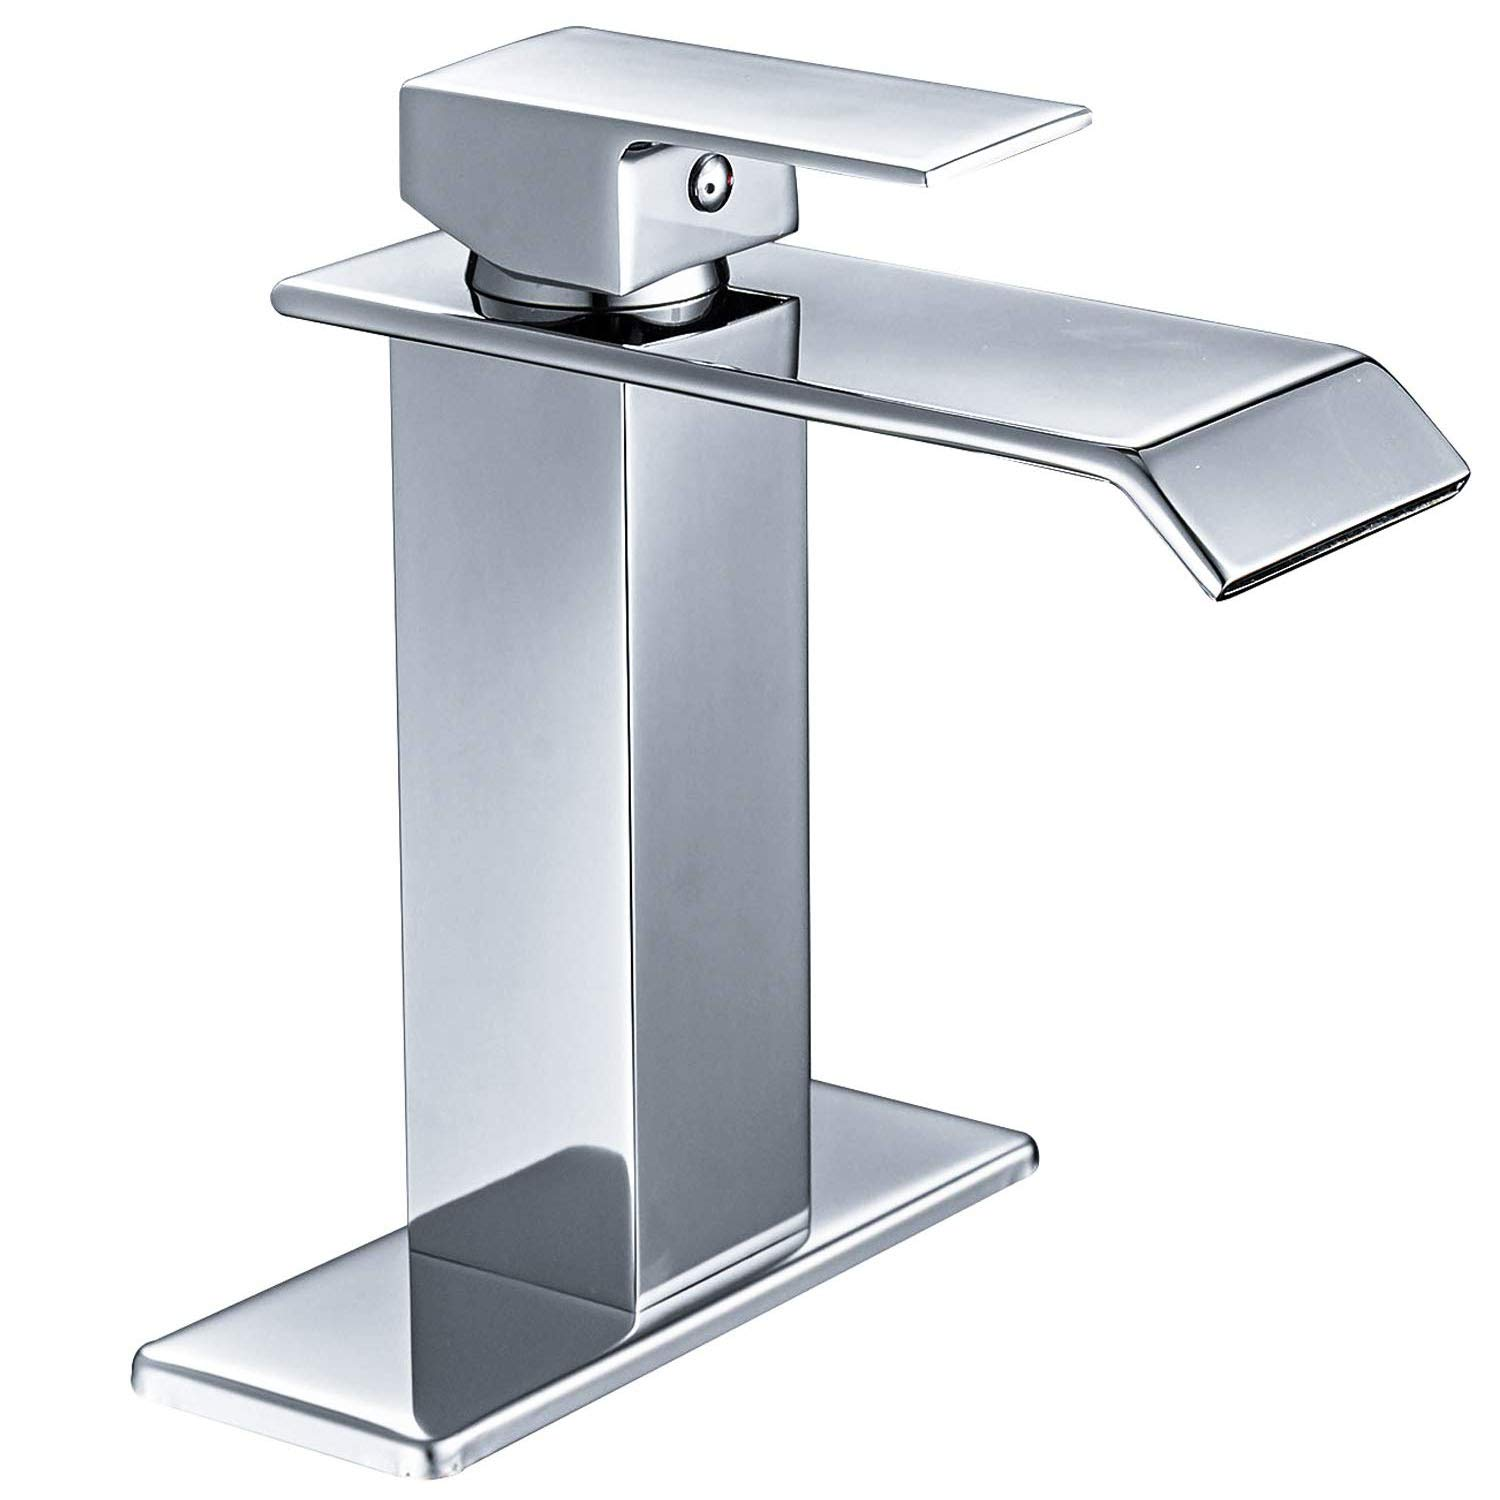 Homevacious Bathroom Faucet Waterfall Chrome Single Handle Modern Lavatory Sink Vanity Faucets One Hole Lever Extra Large Rectangular Spout Basin Deck Mount Mixer Tap Supply Hose Lead-Free